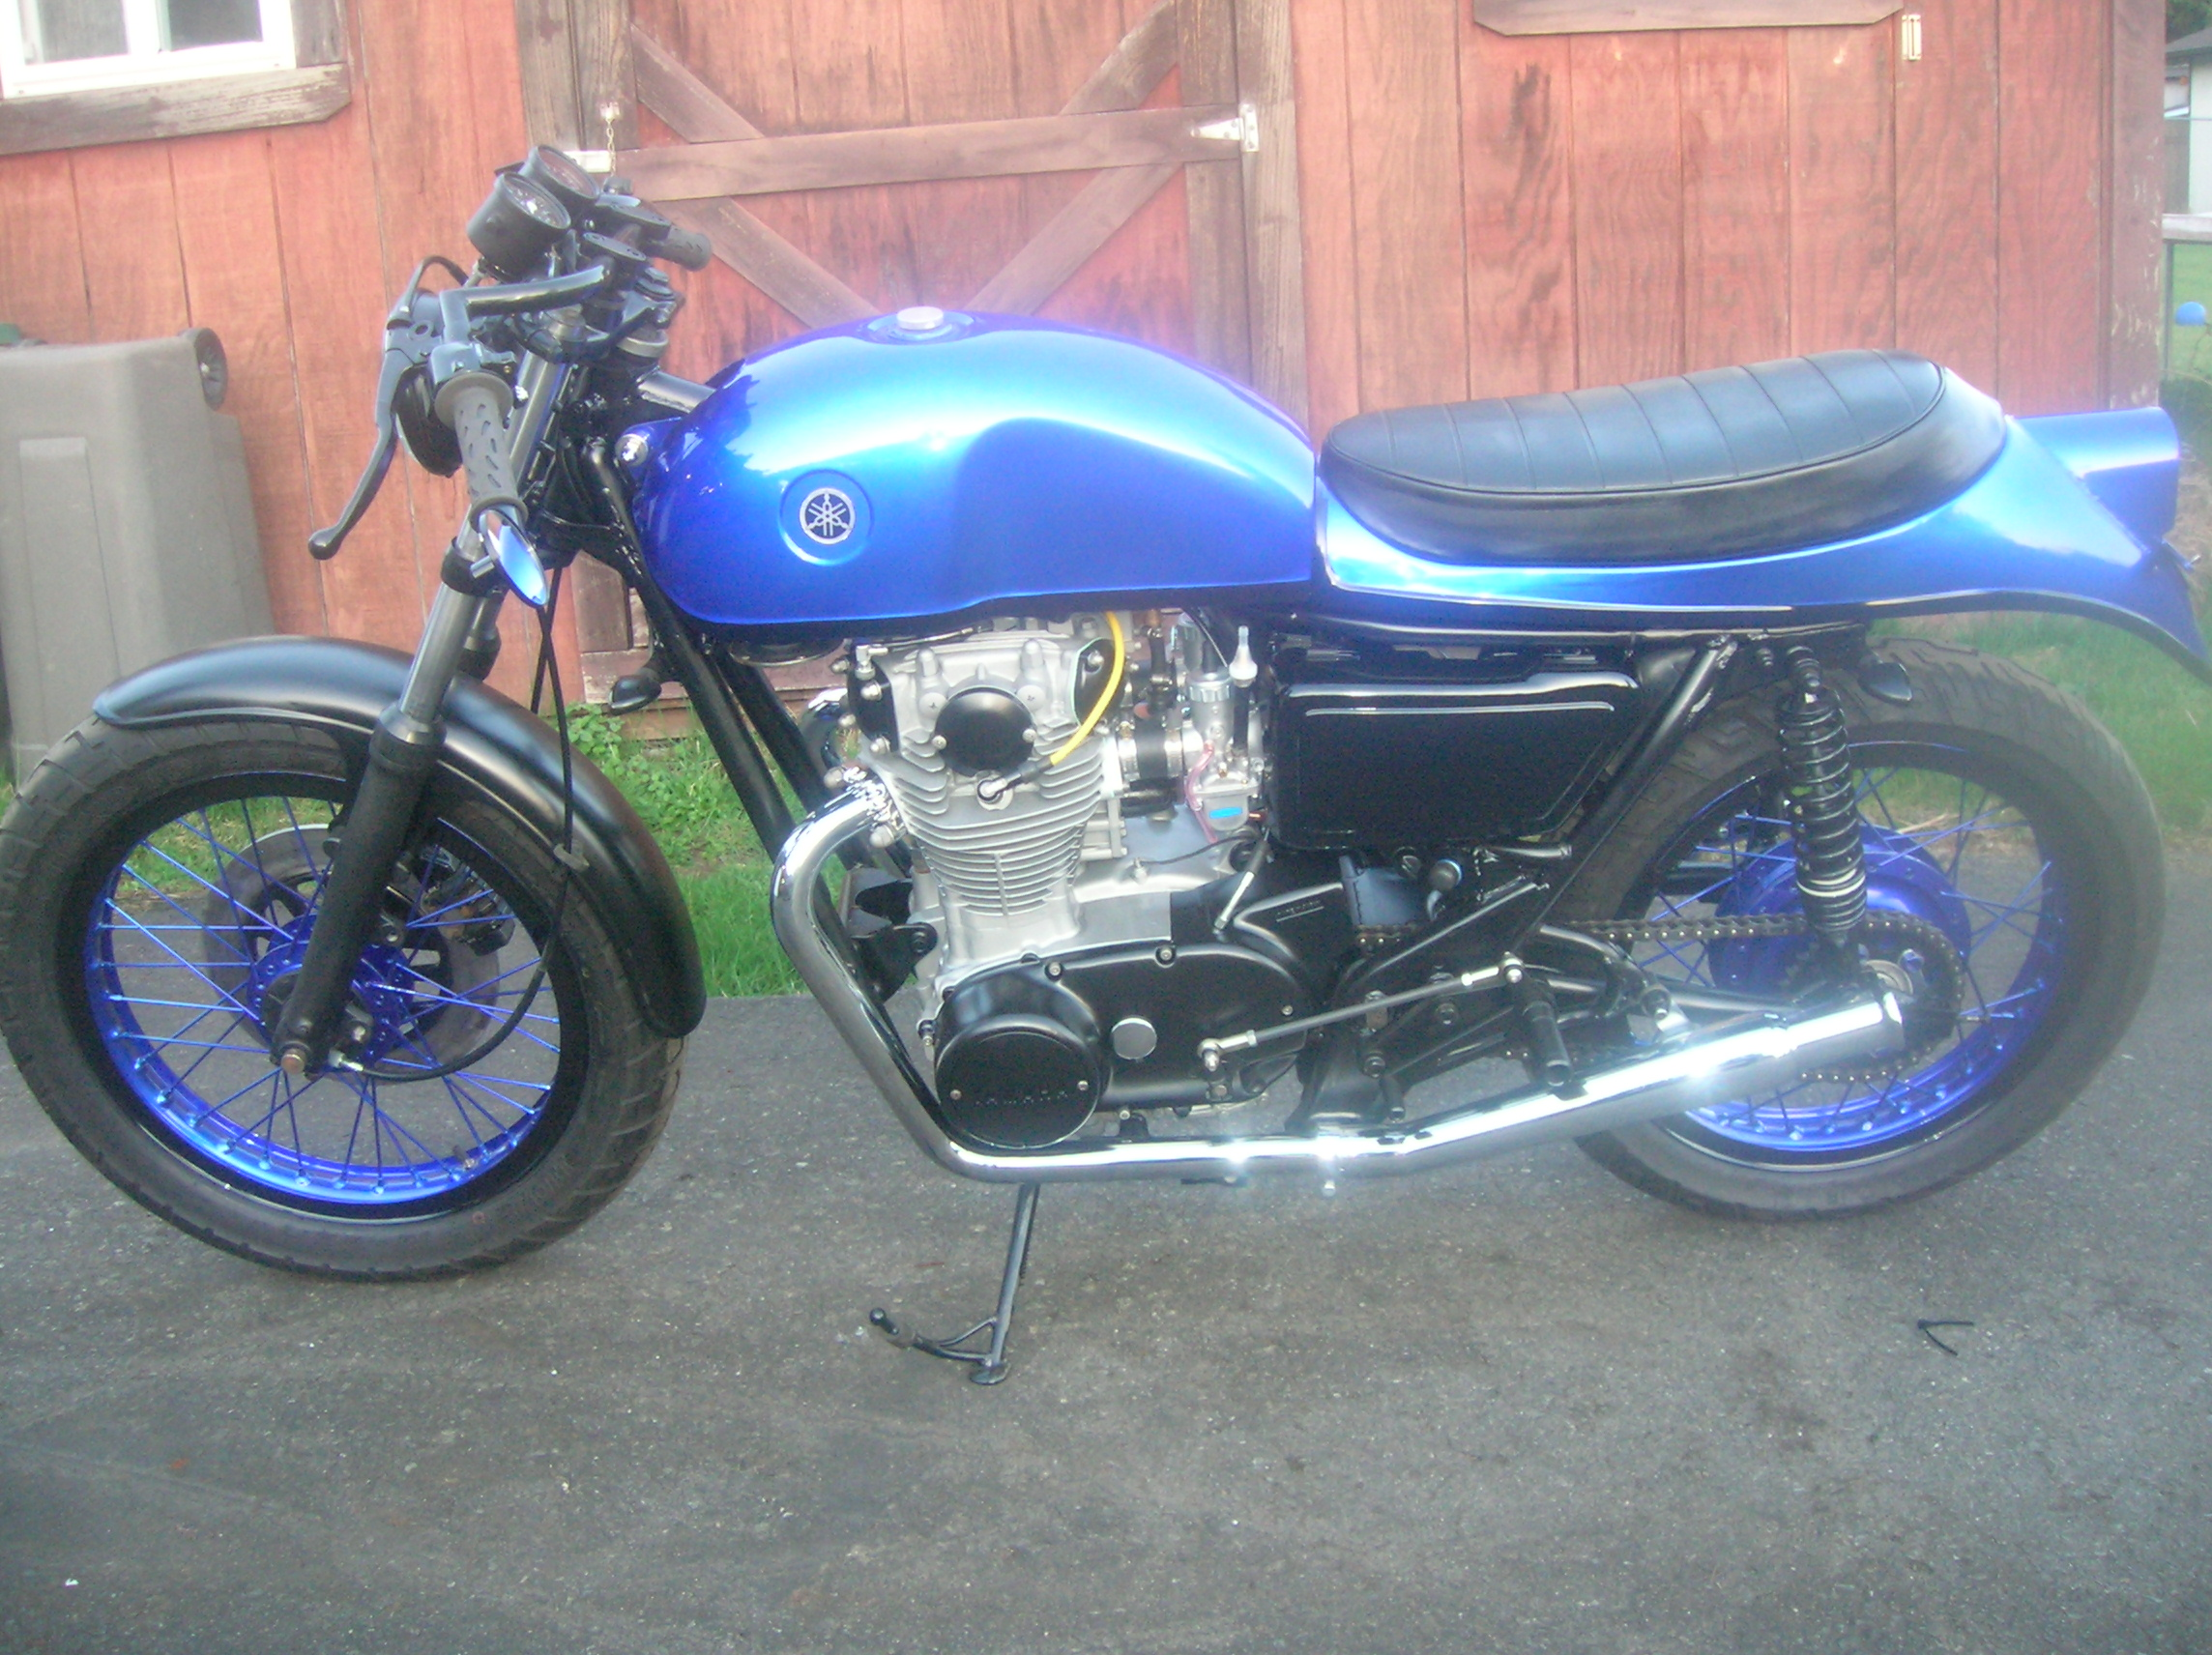 Yamaha Xs650 Custom Cafe Racer For Sale